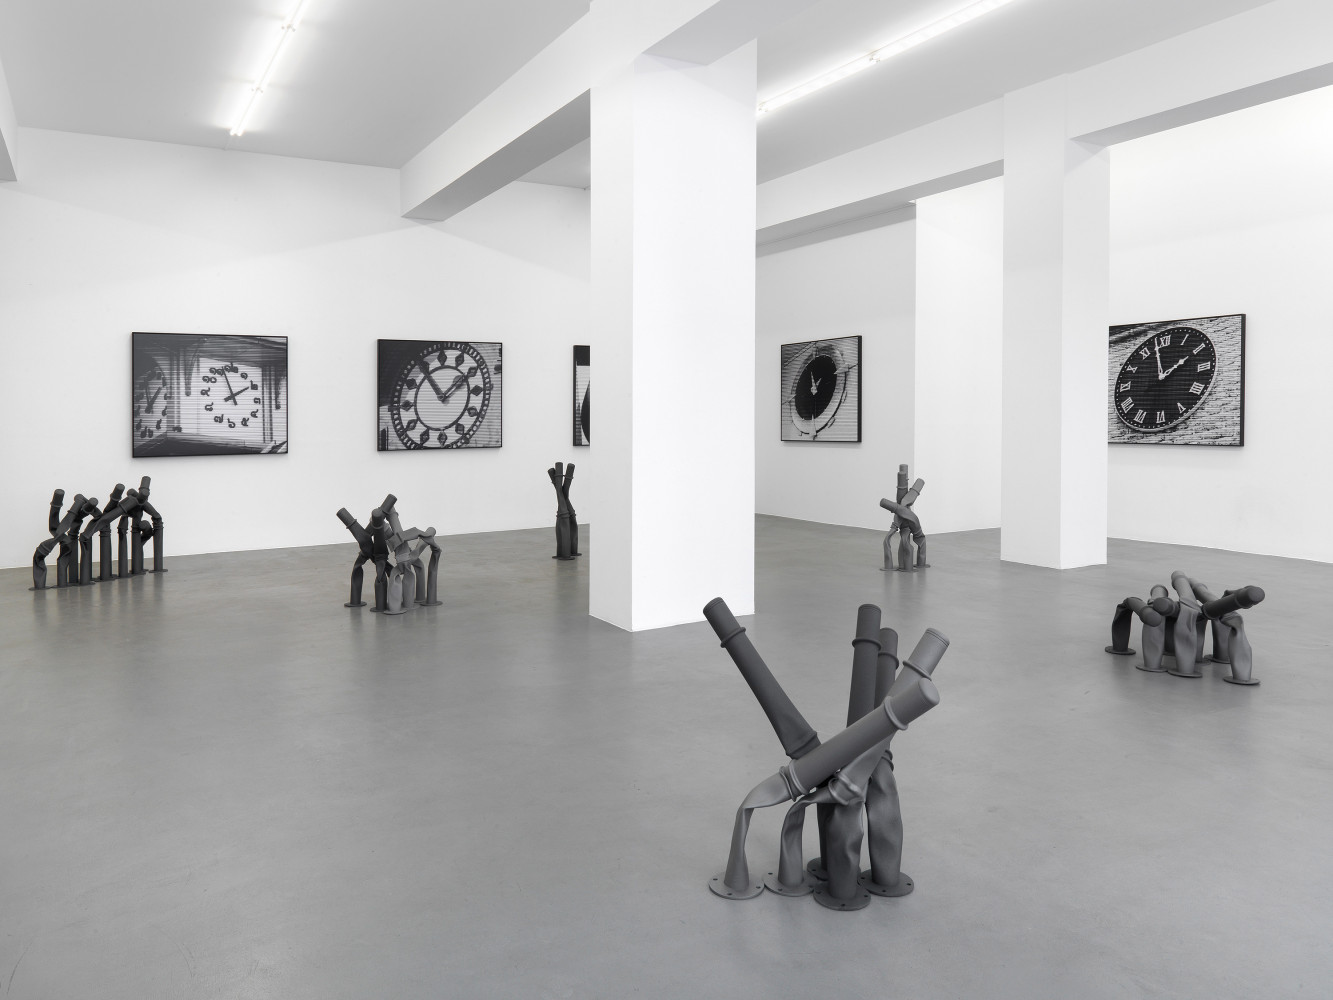 Bettina Pousttchi, 'Off the Clock', Installation view, Buchmann Galerie, 2013